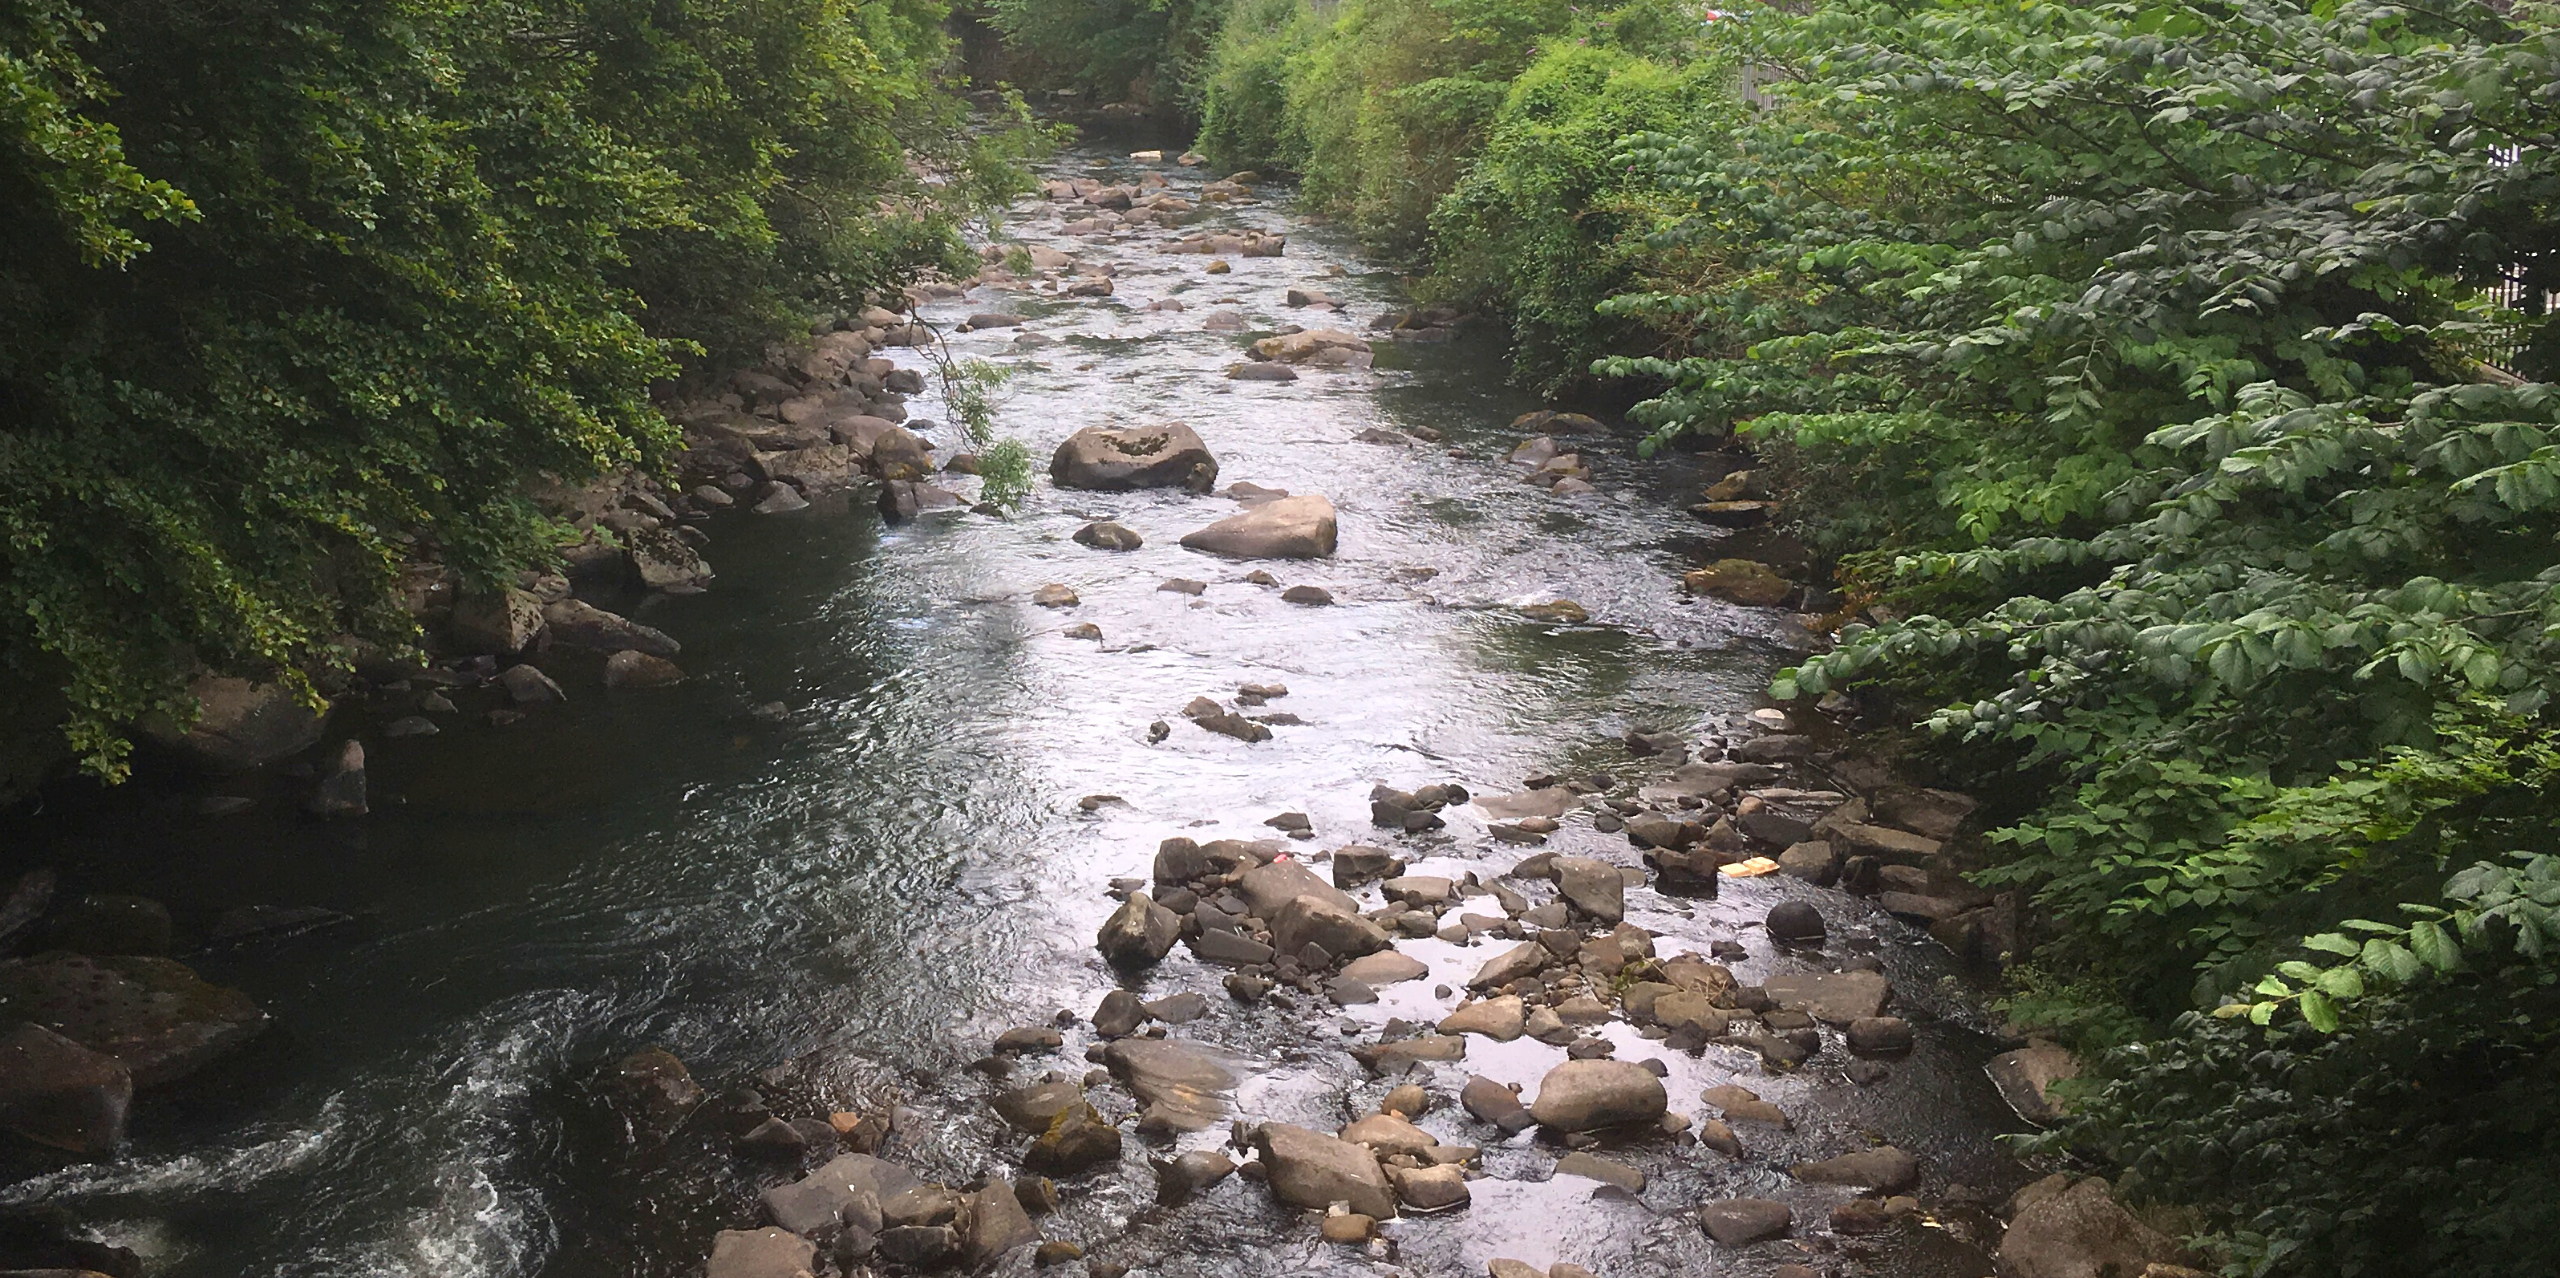 The River Cynon in South Wales. Photo: South East Wales Rivers Trust.